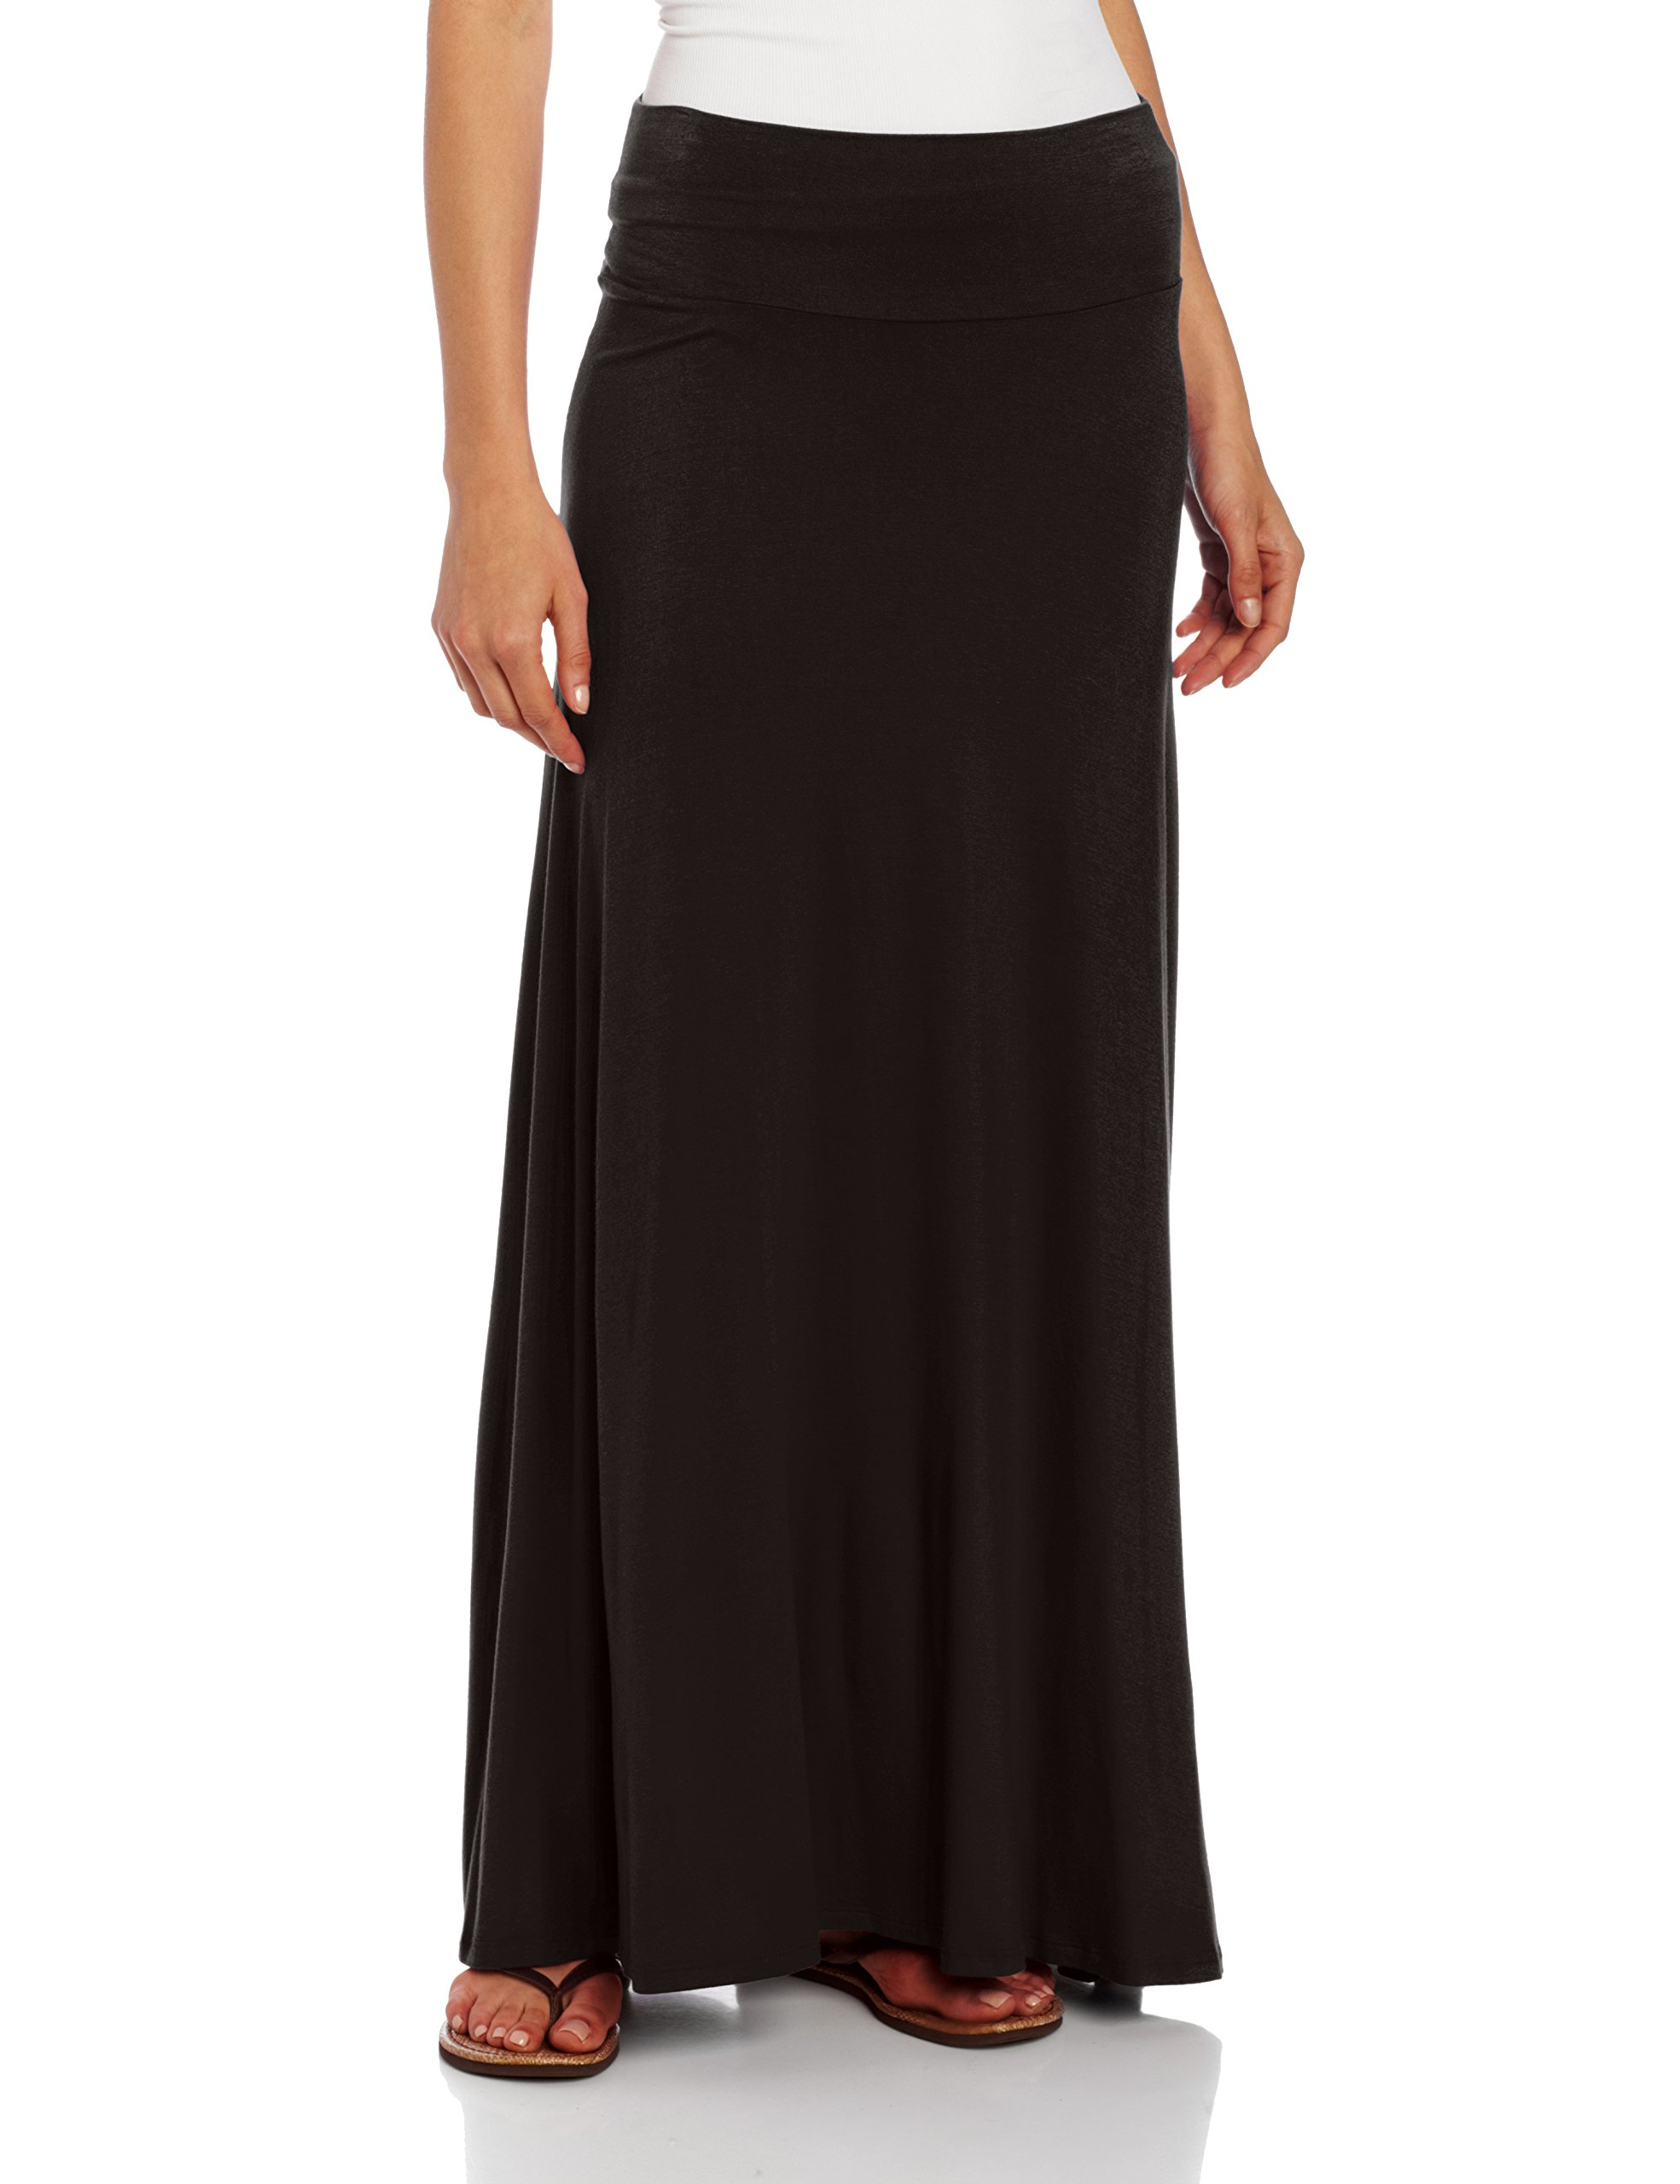 AGB Women's Timeless Fashion Long Soft Knit Skirt with Waist Detail, Black, Medium